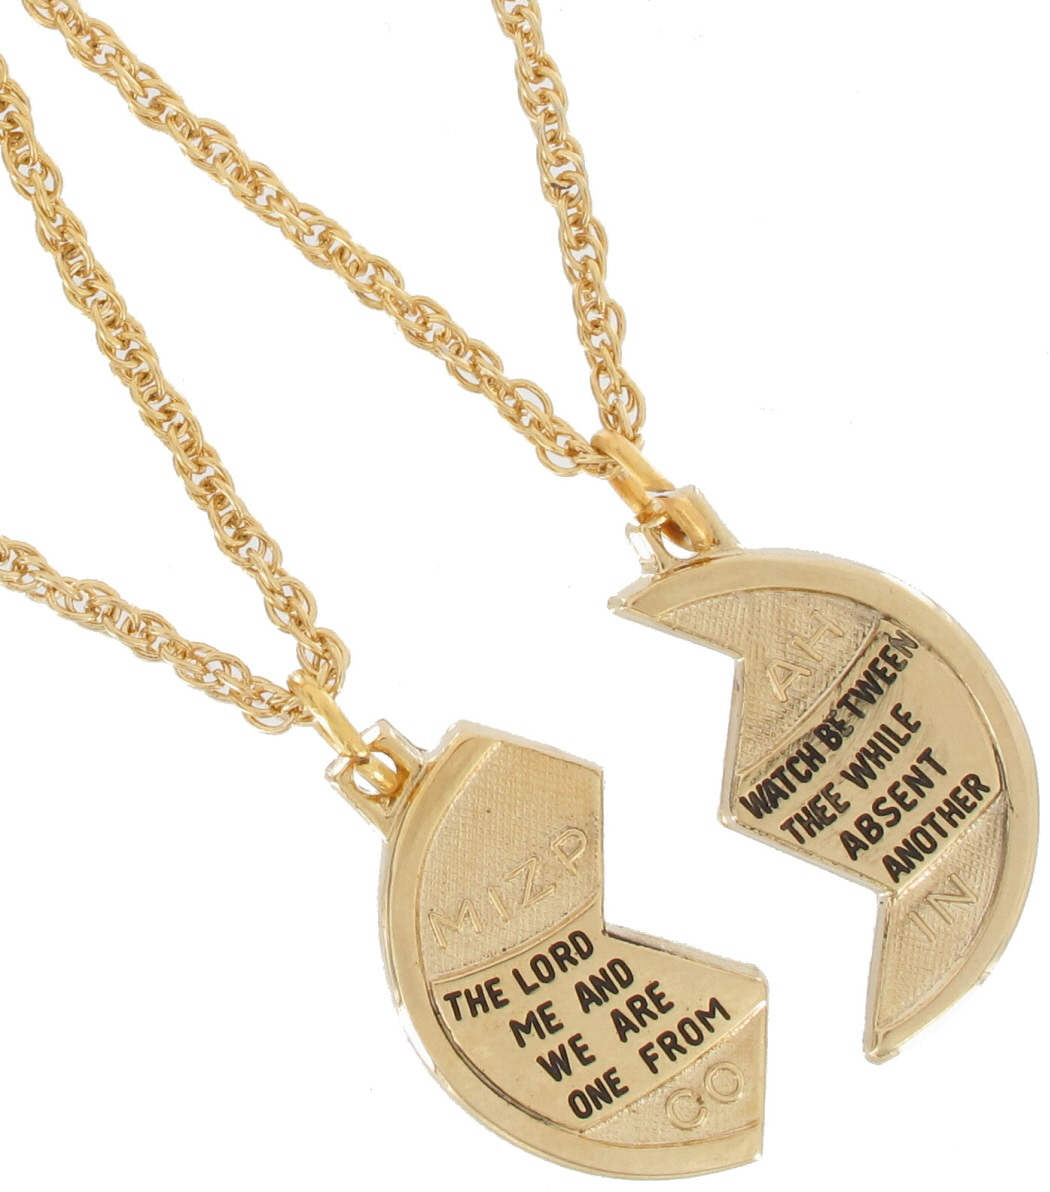 Foster Necklace Bff Set Mizpah Coin Best Friends Genesis Pendant Gold Tone Small Thumbnail 2